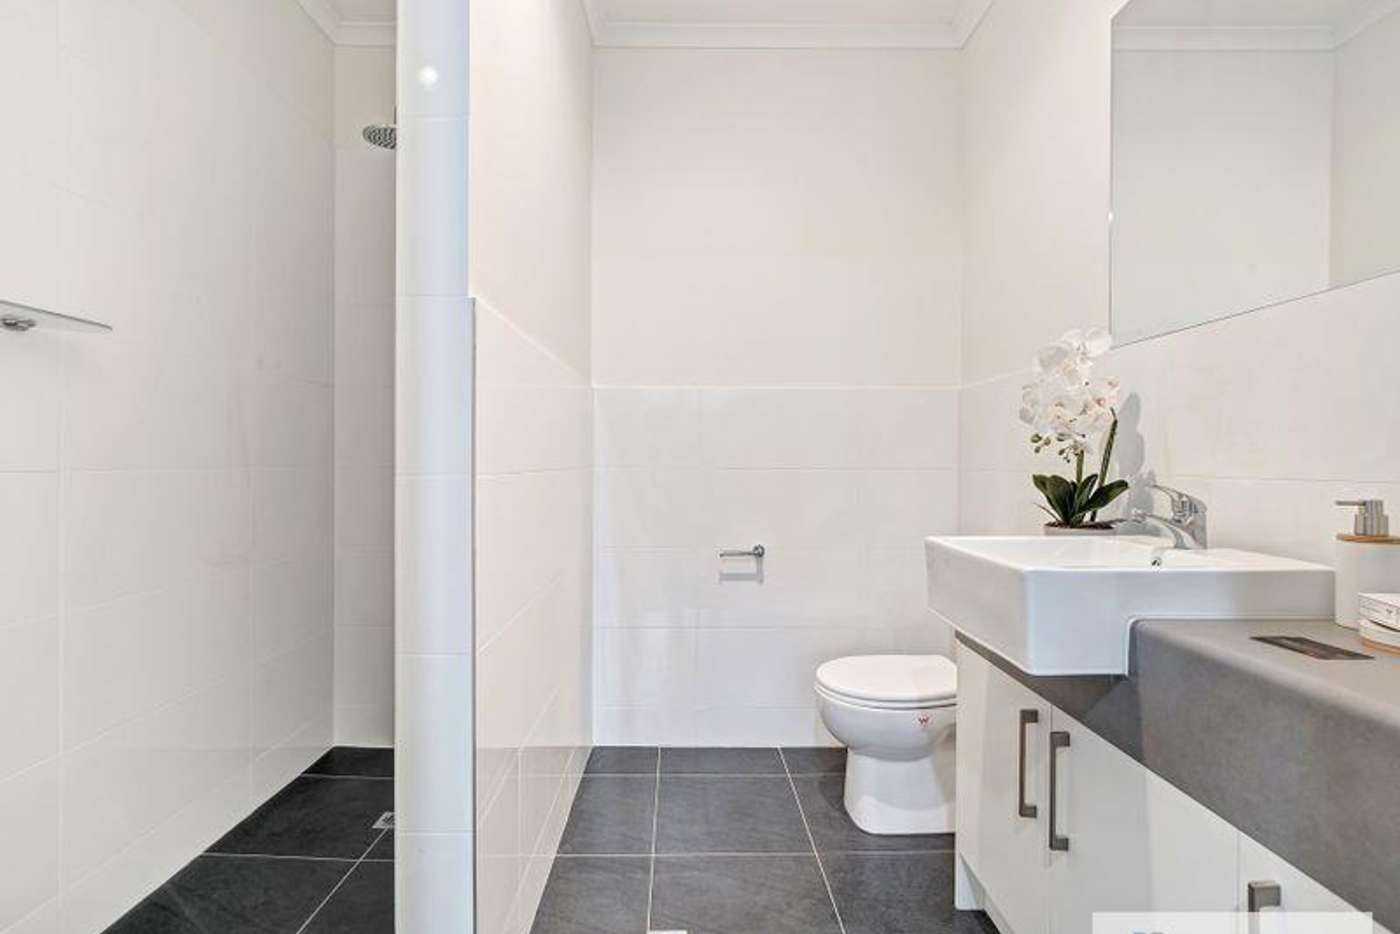 Sixth view of Homely villa listing, 3 Norma Street, Mile End SA 5031